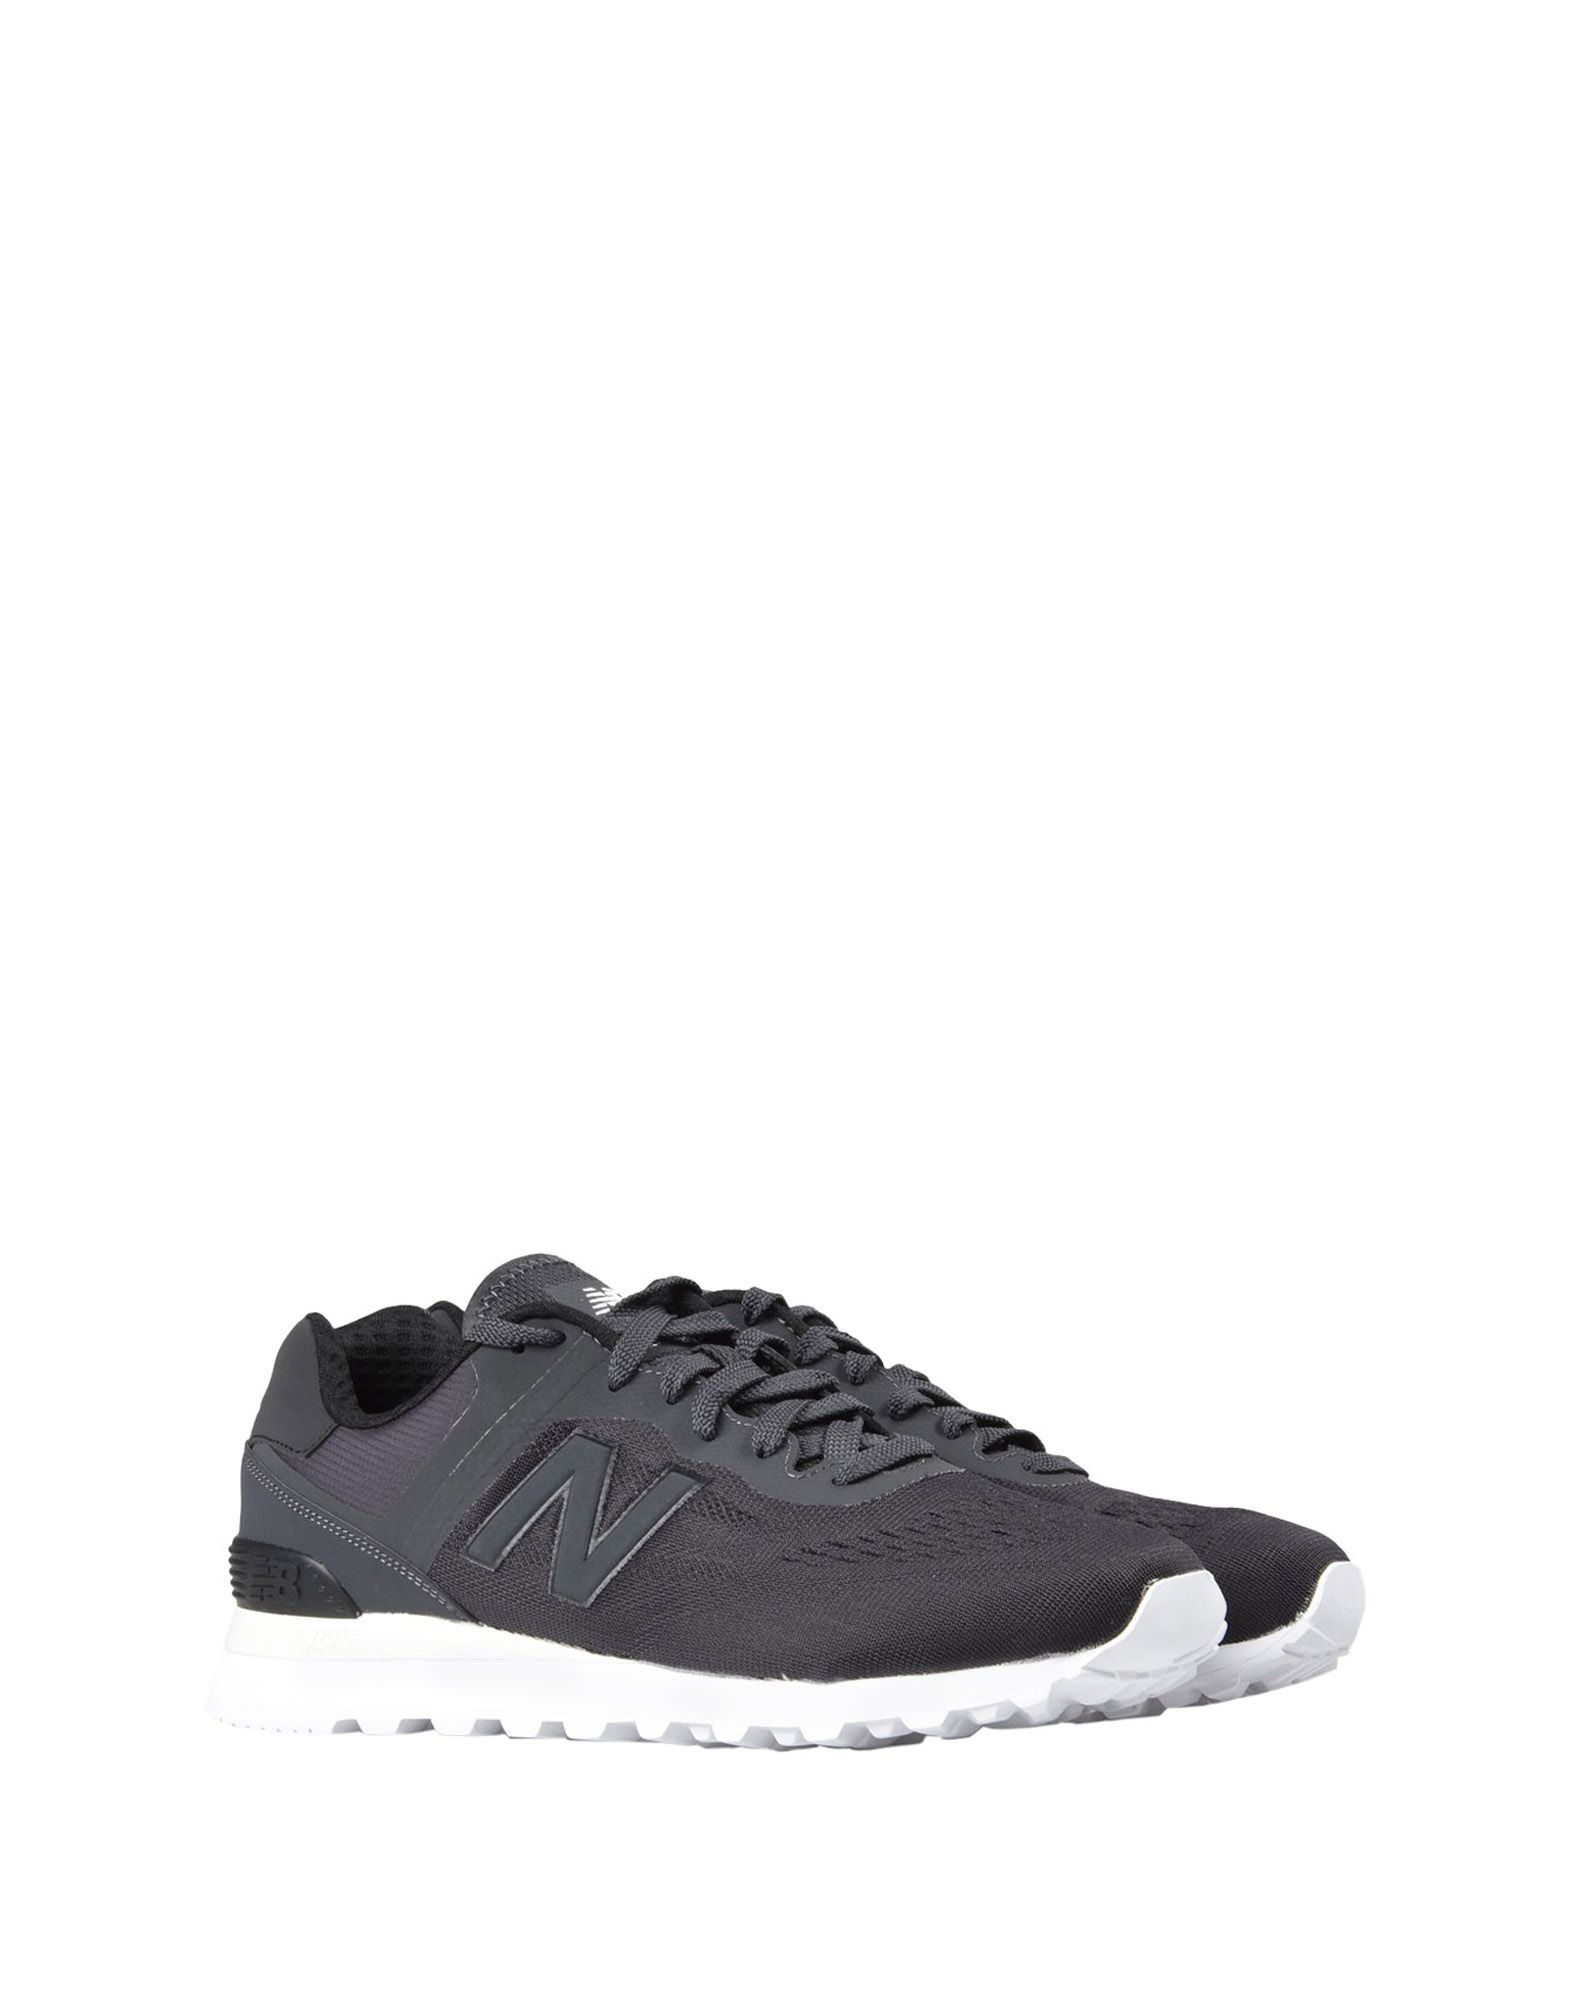 Sneakers New Balance 574 Reengineered - Homme - Sneakers New Balance sur